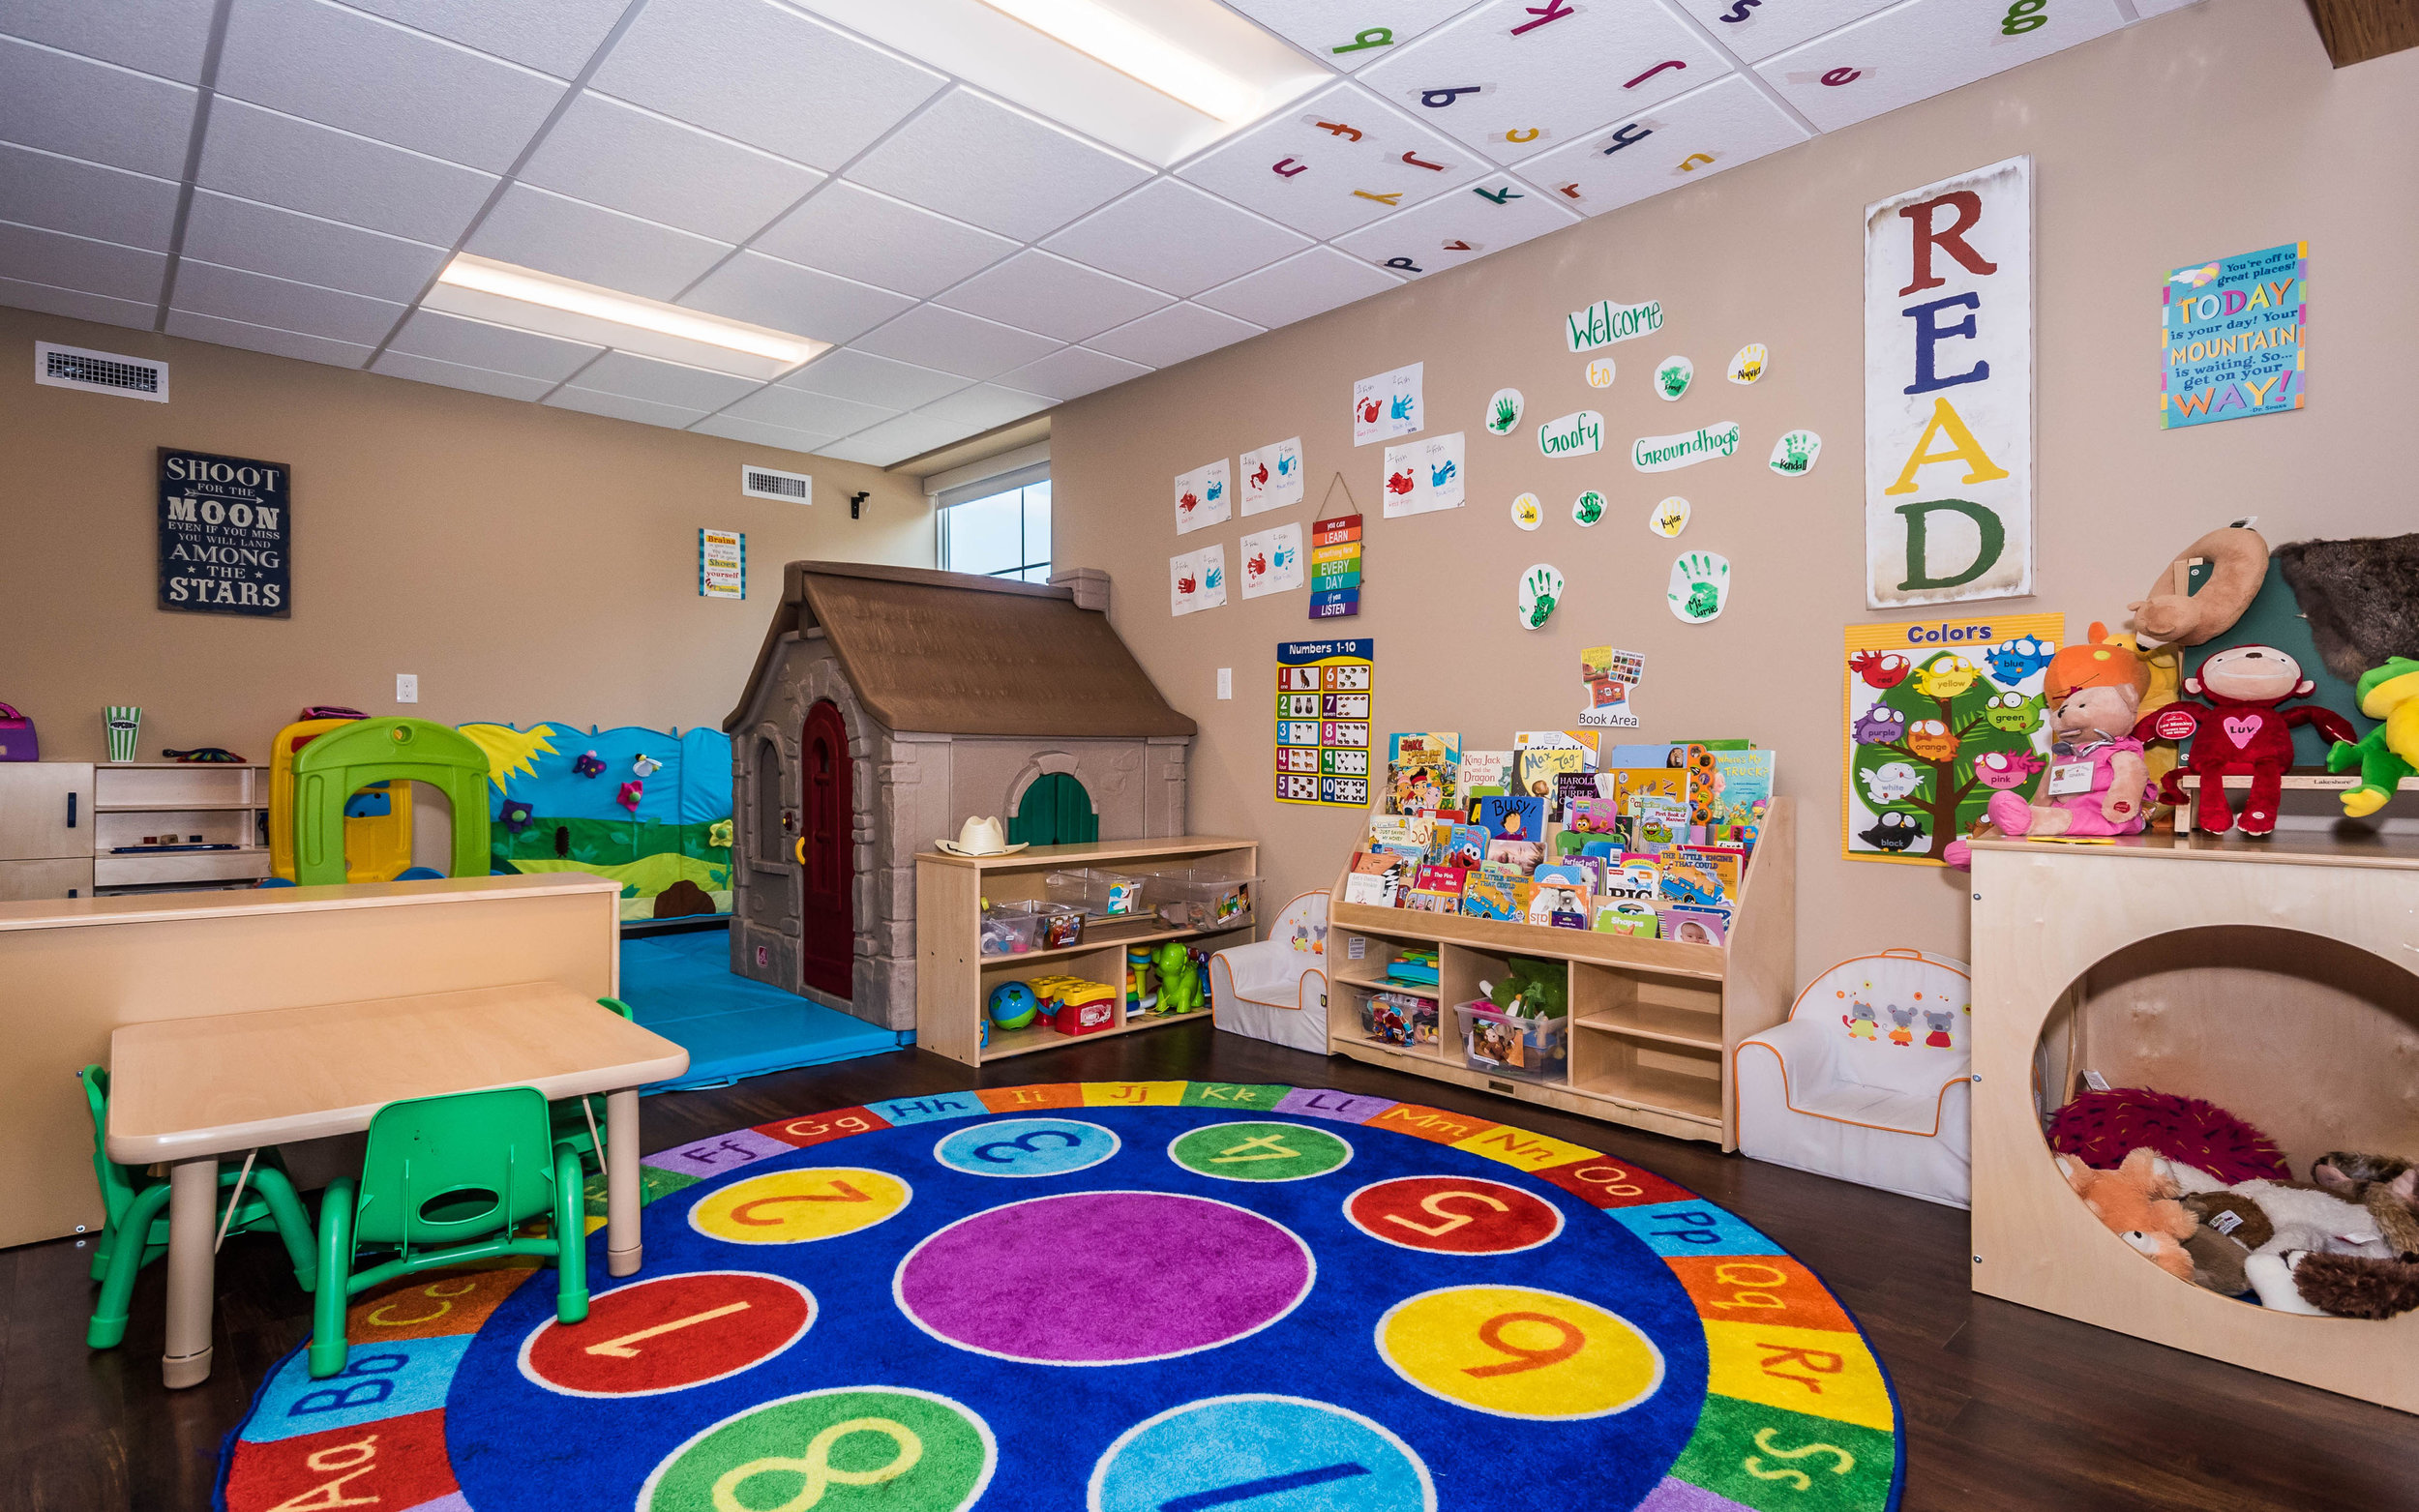 First Steps Childcare   Just three short years after opening its doors in the City of Rochester, MN, First Steps Childcare expands it's services with construction of a new 4,000 square foot facility adjacent to its existing daycare.